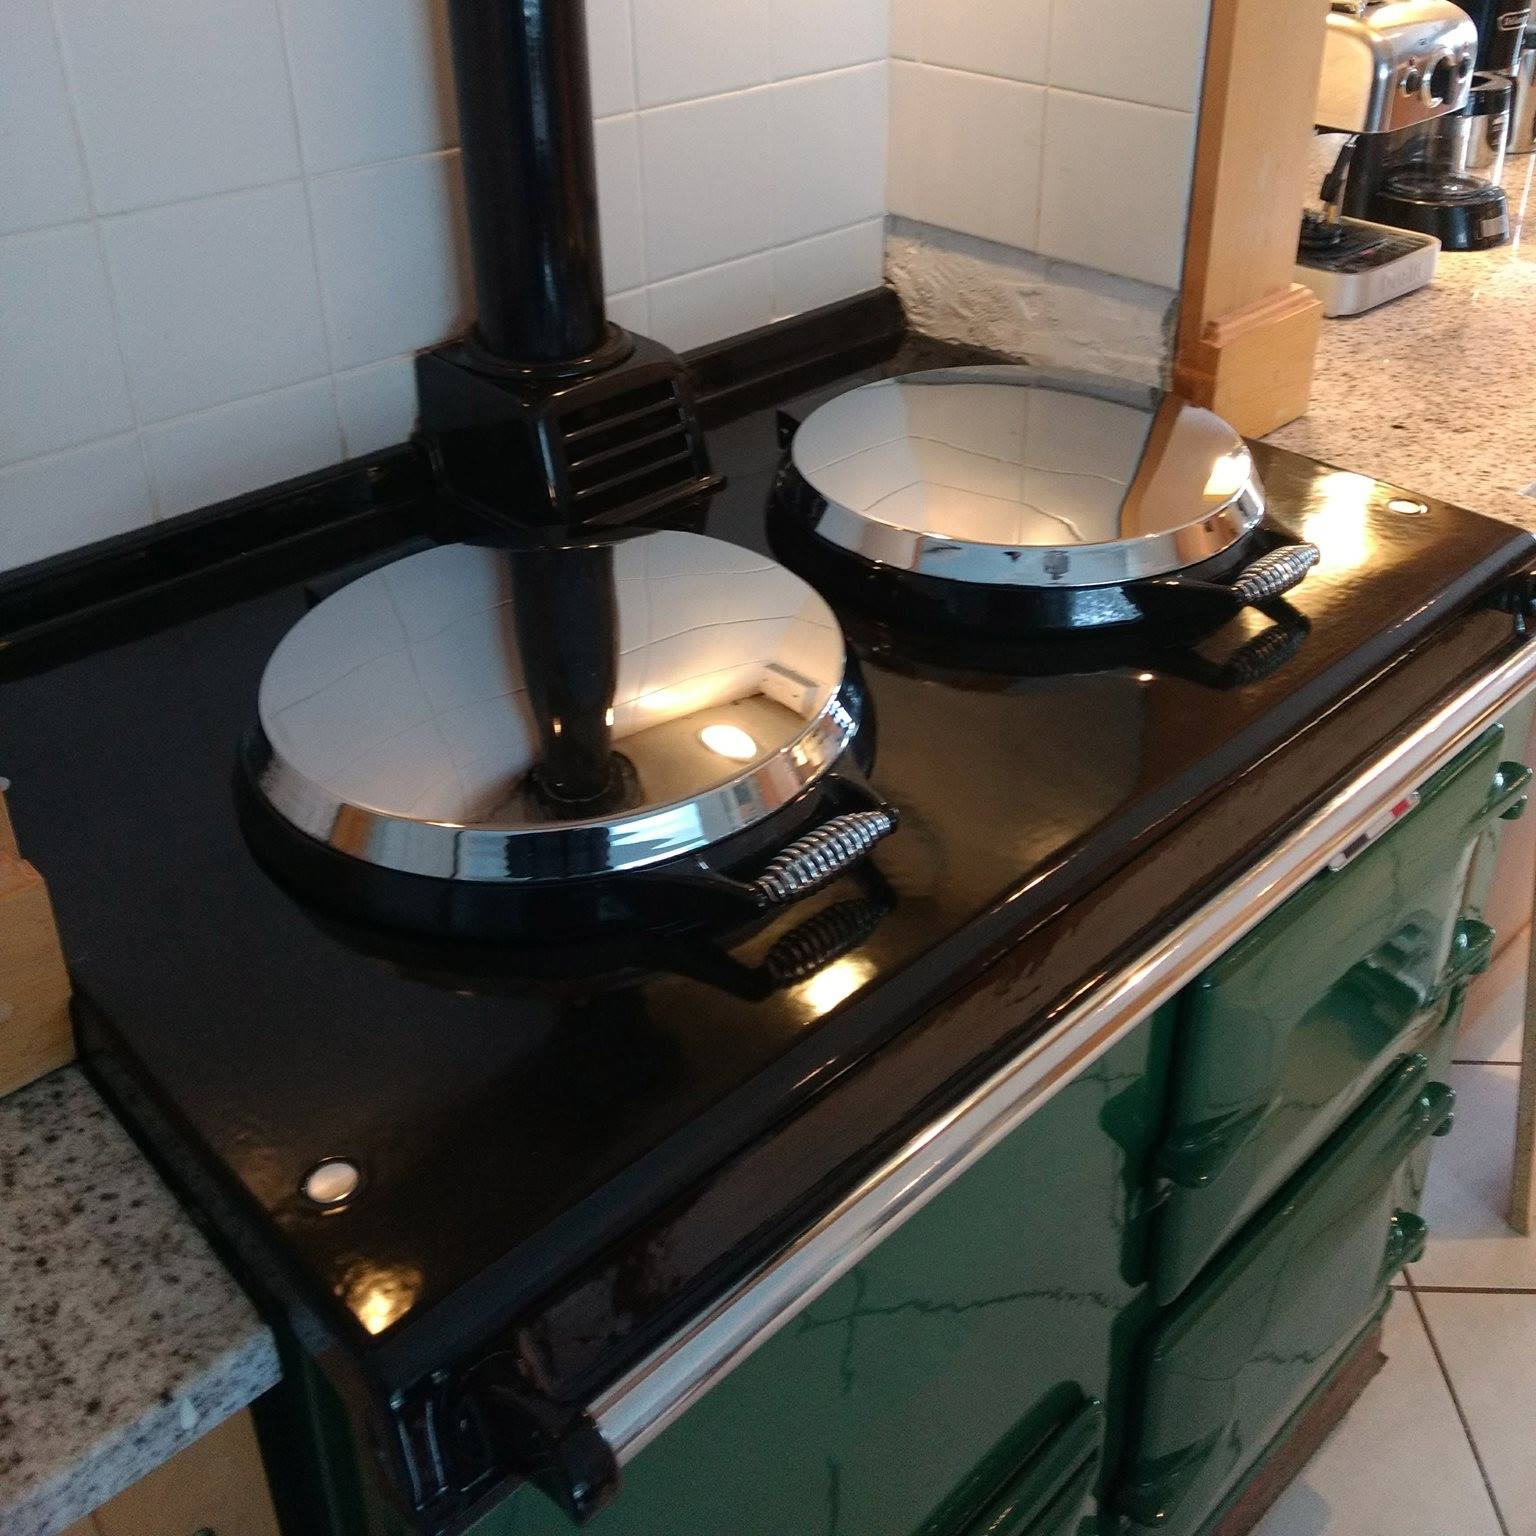 Green re-enamelled Aga range cooker with lids down